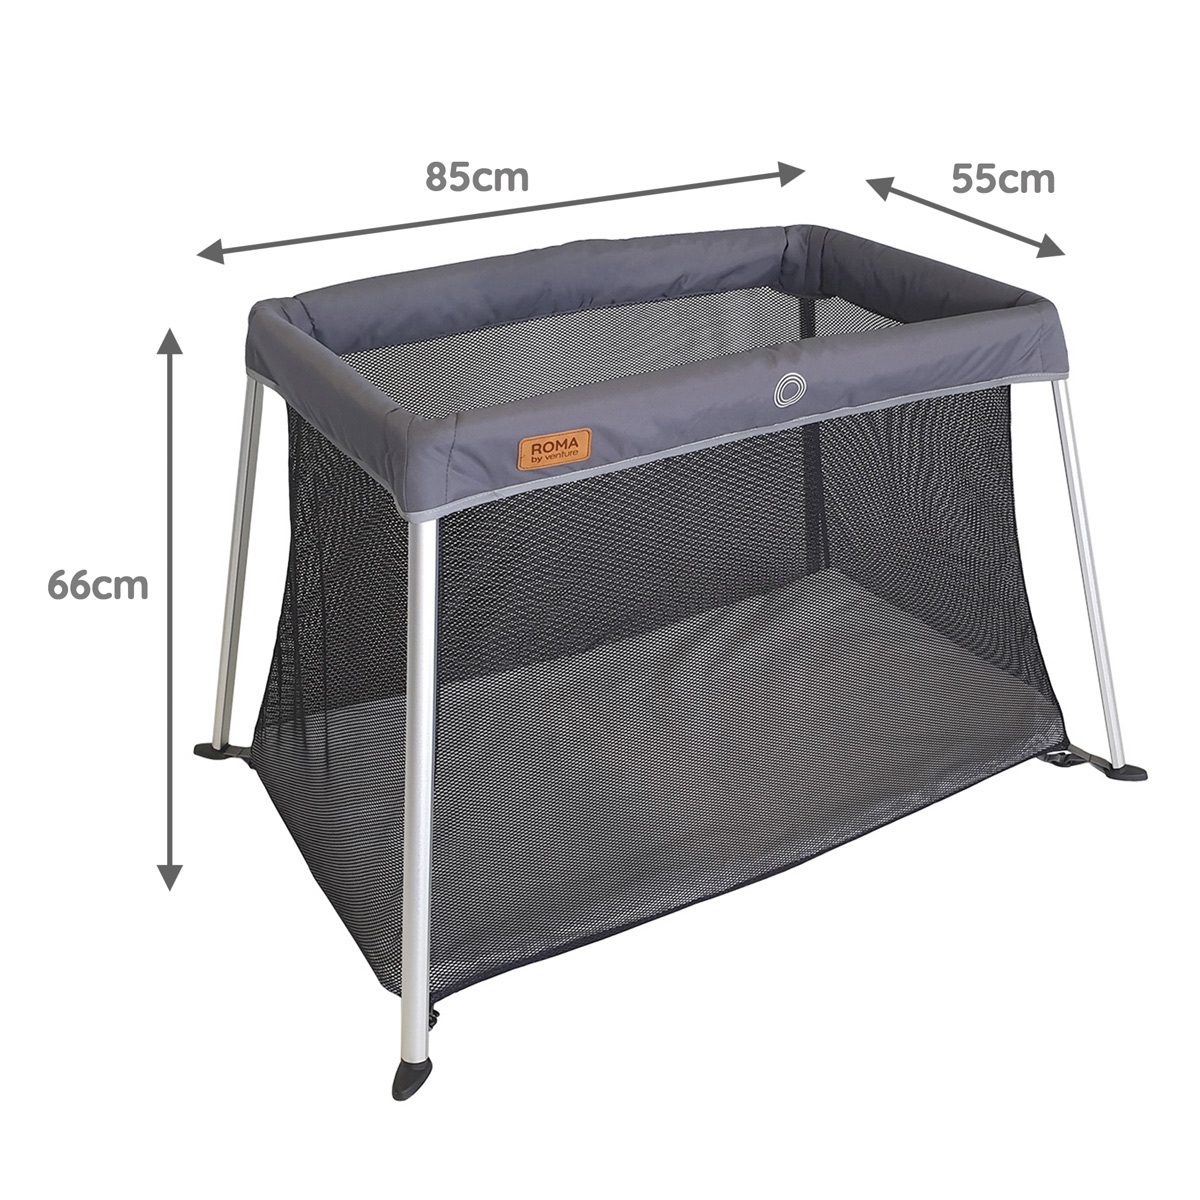 The dimensions of the Venture Amor travel cot